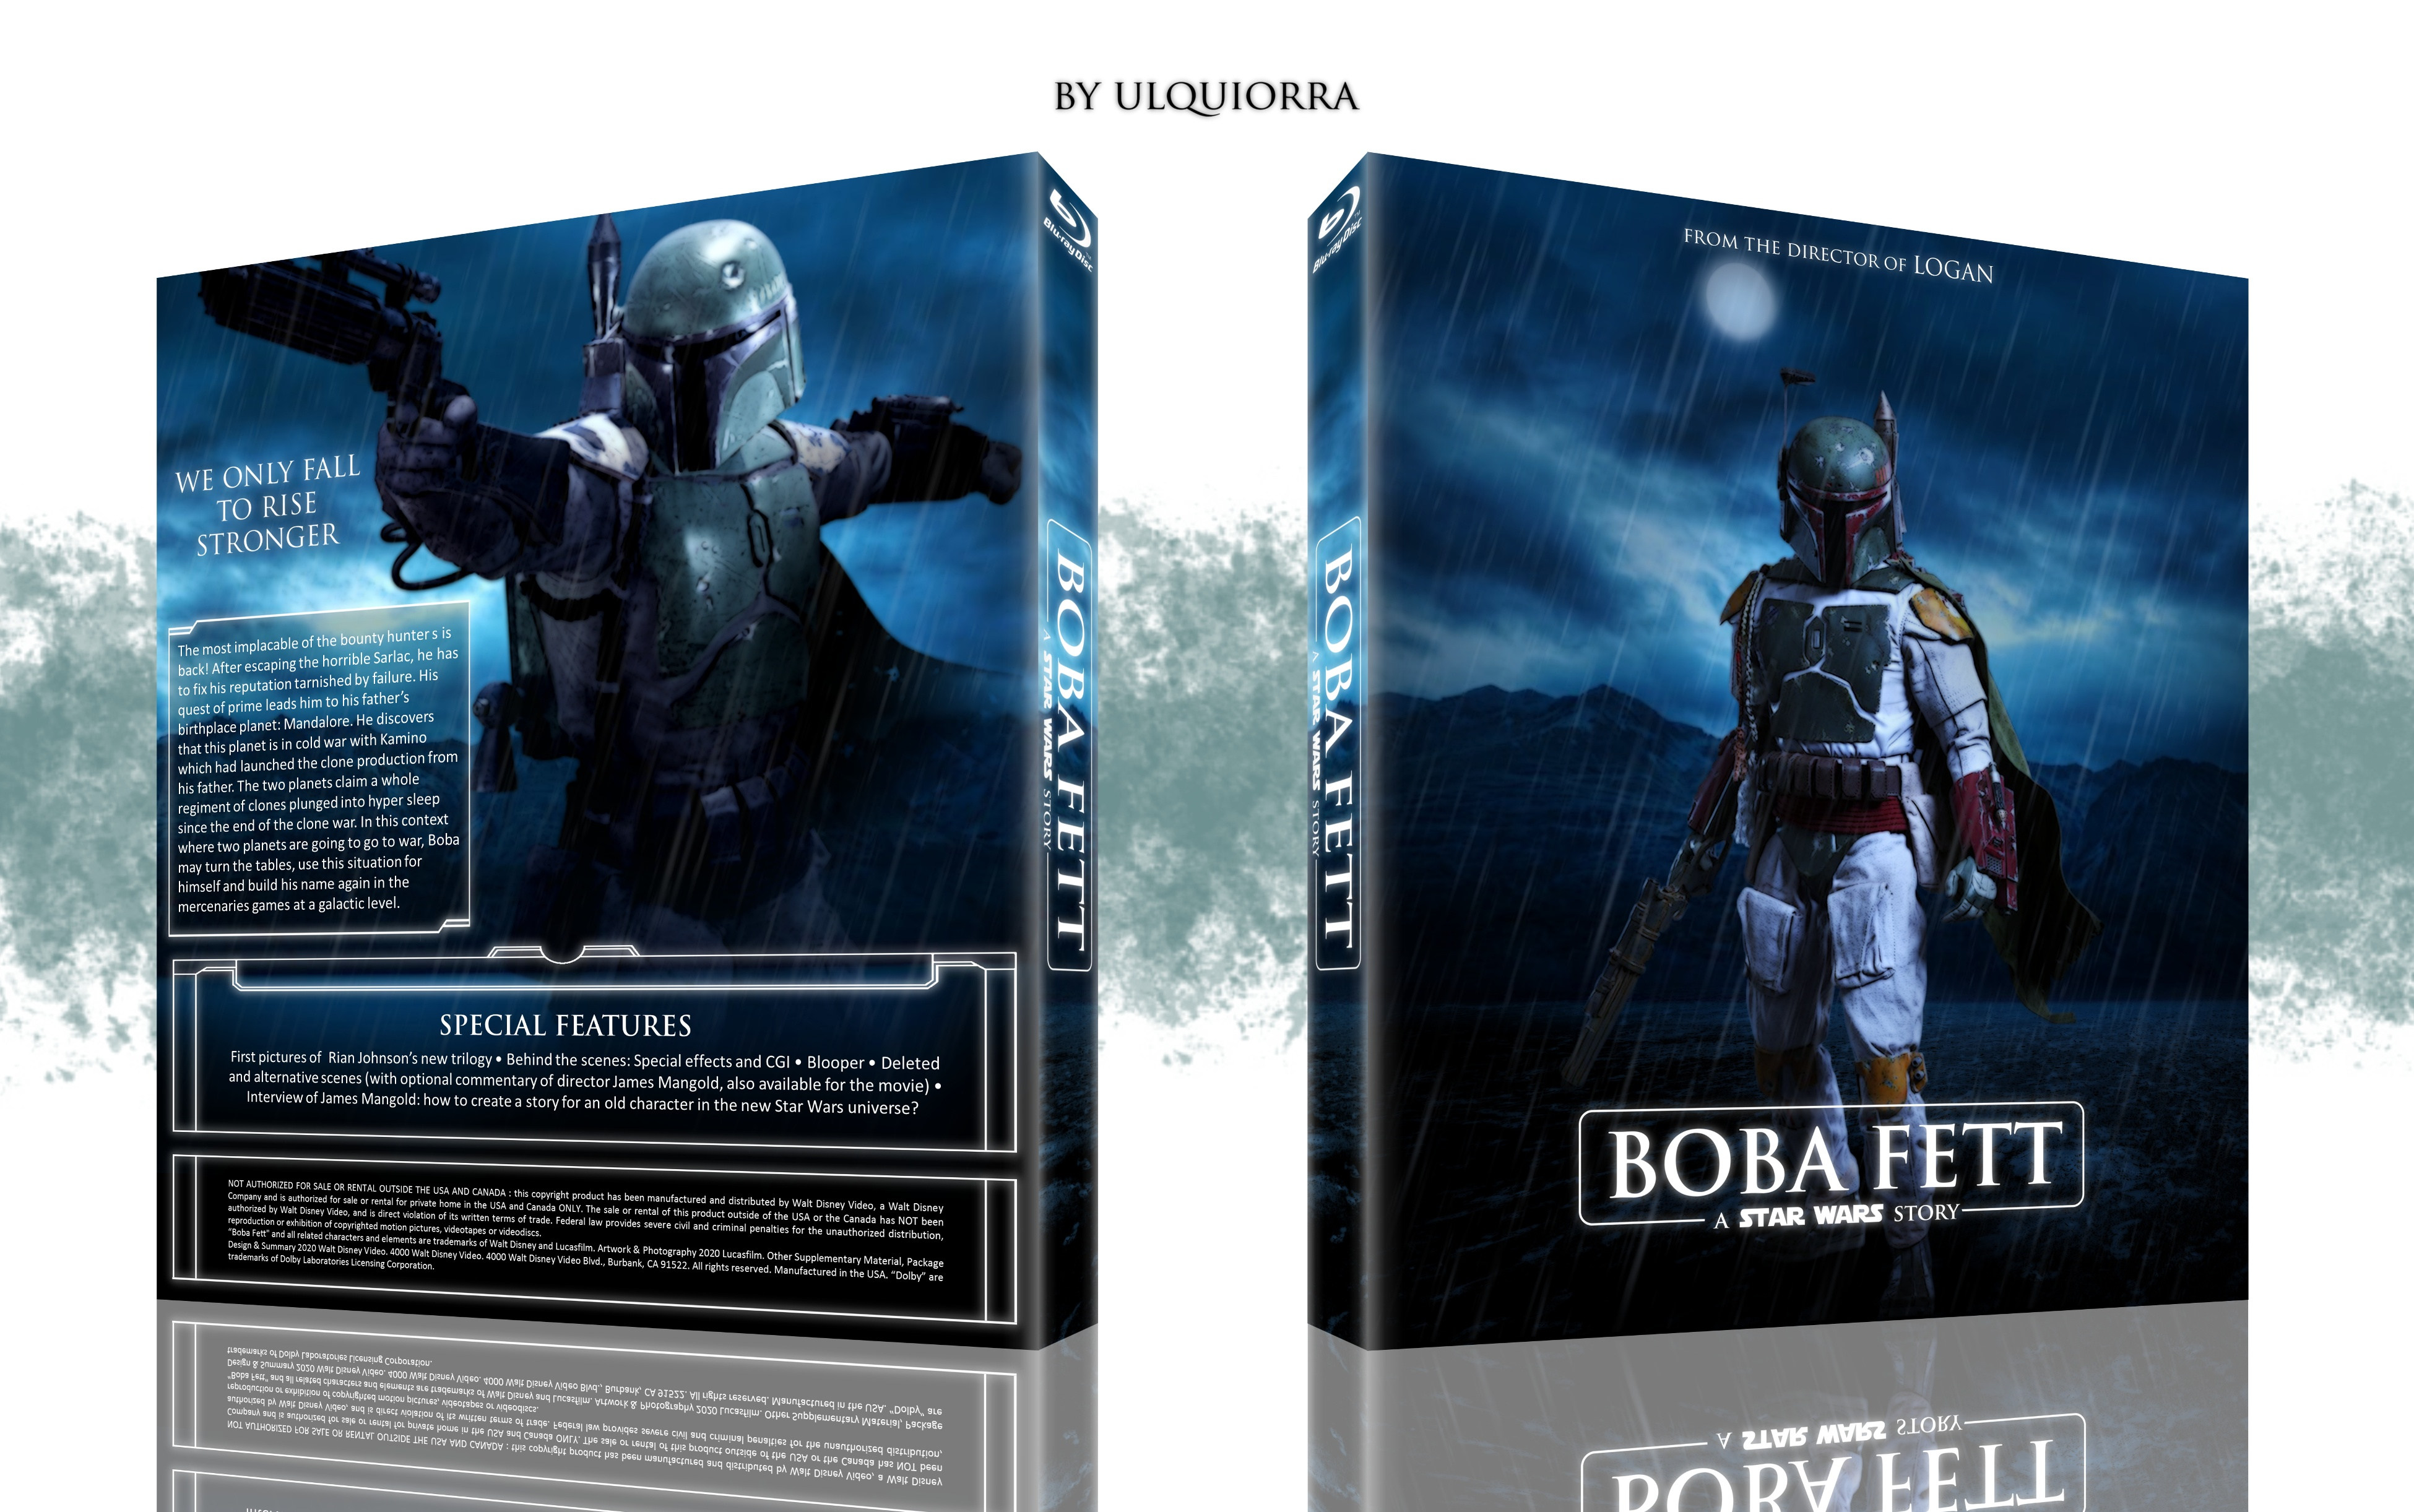 Boba Fett: A Star Wars Story box cover